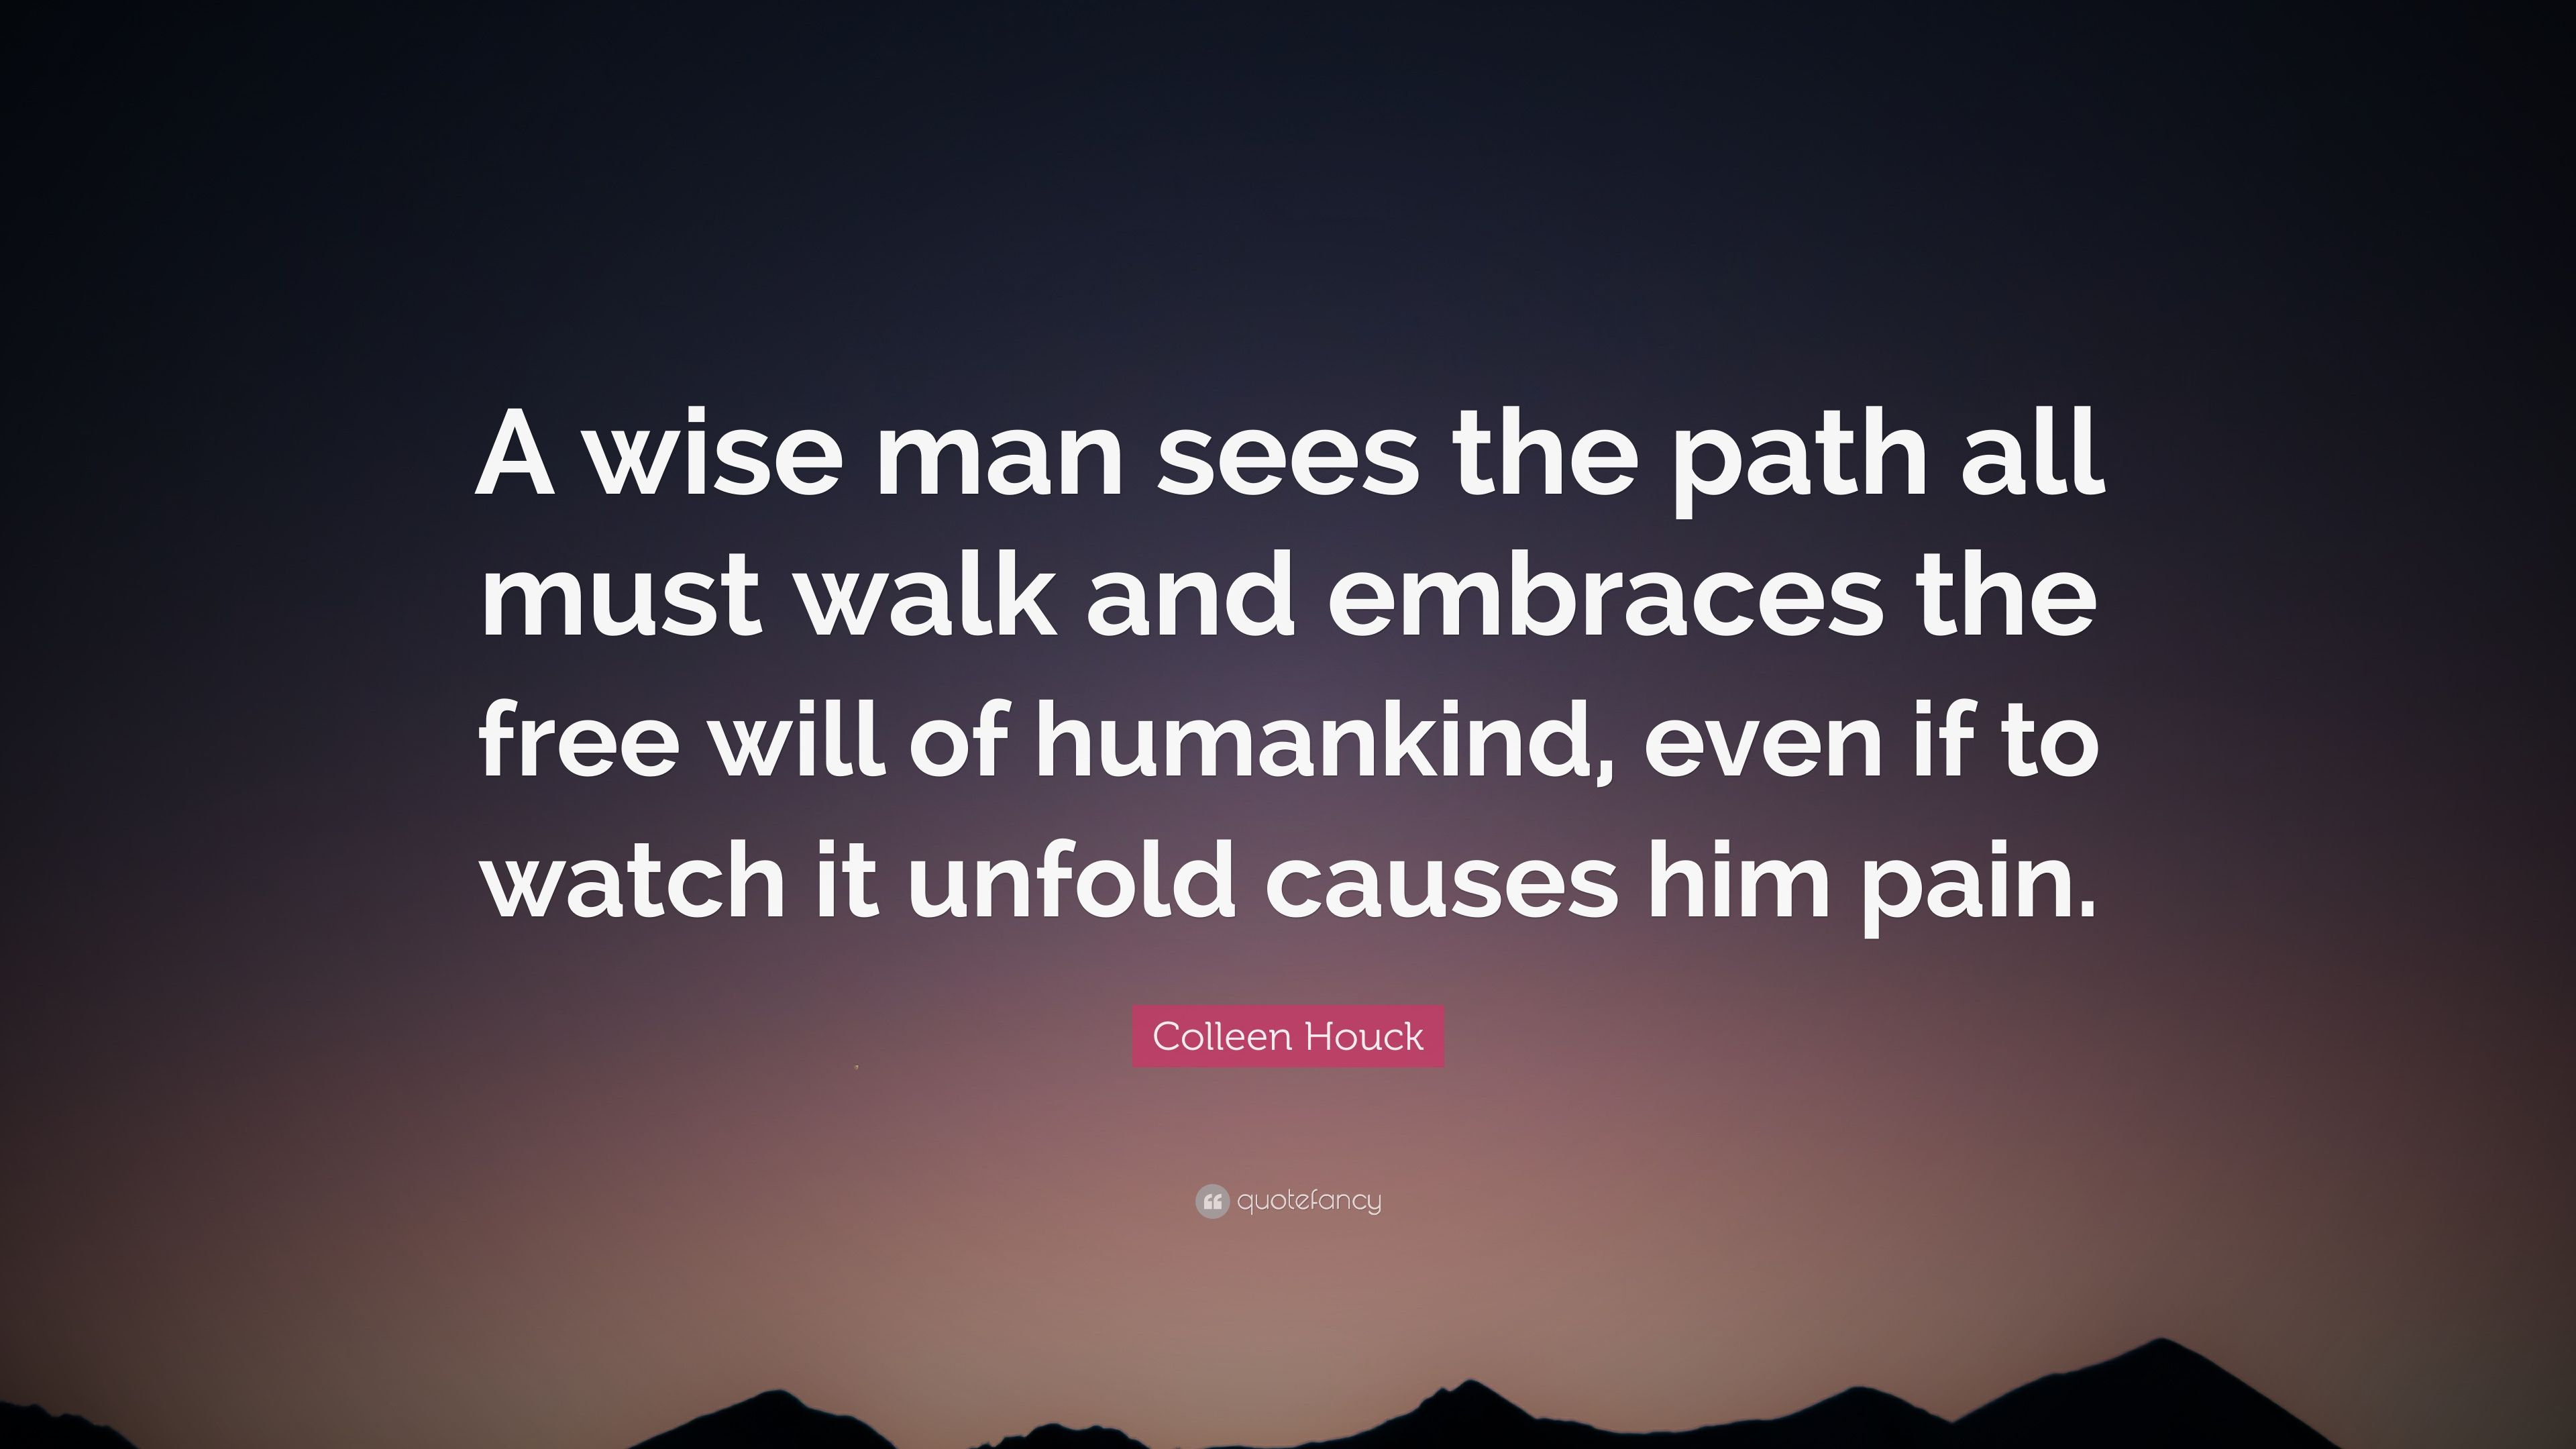 Merveilleux Colleen Houck Quote: U201cA Wise Man Sees The Path All Must Walk And Embraces